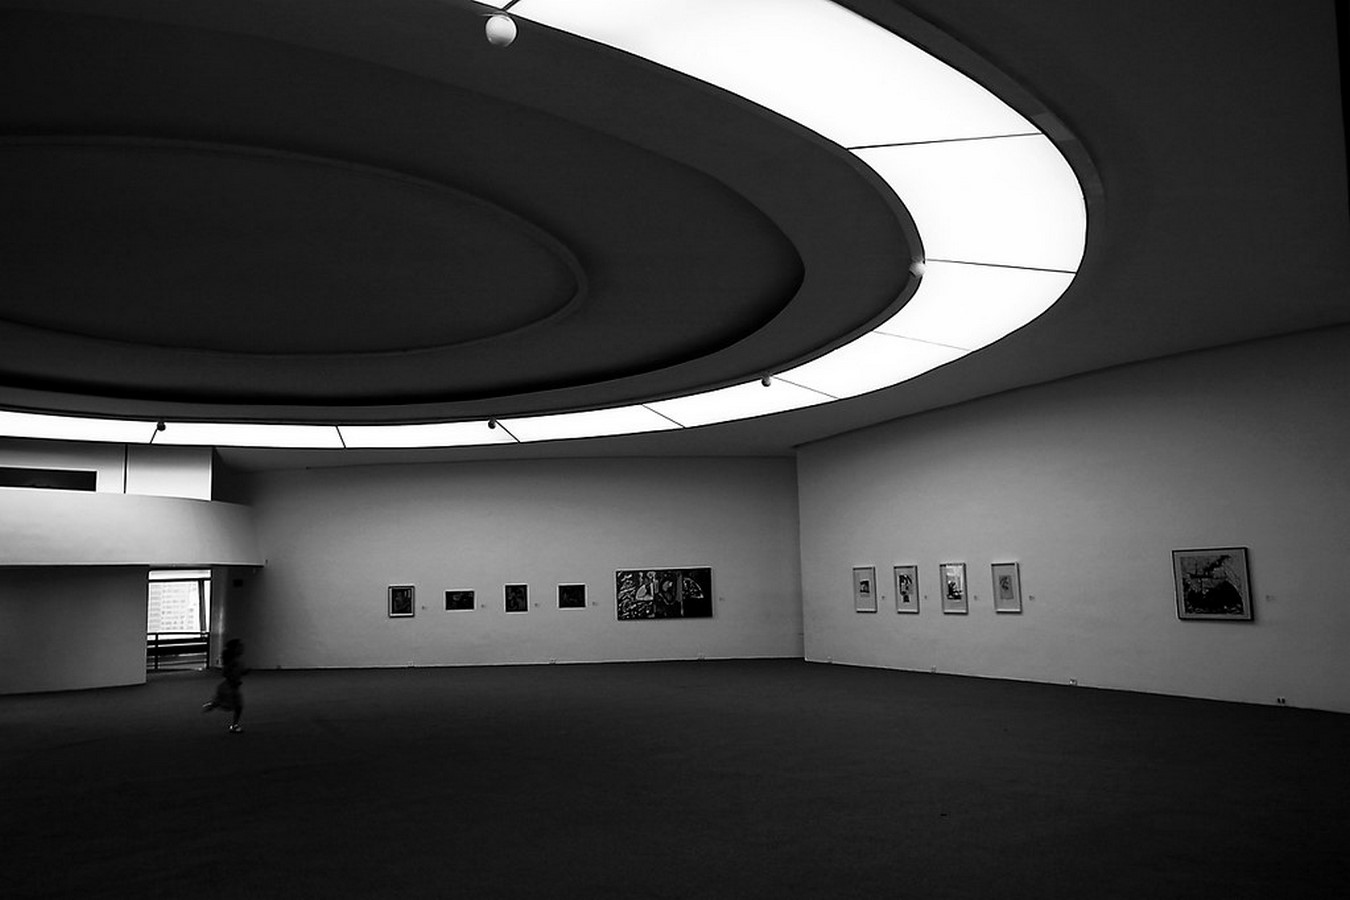 Niterói Contemporary Art Museum by Oscar Niemeyer: Iconic Saucer-Shaped Structure Sheet17